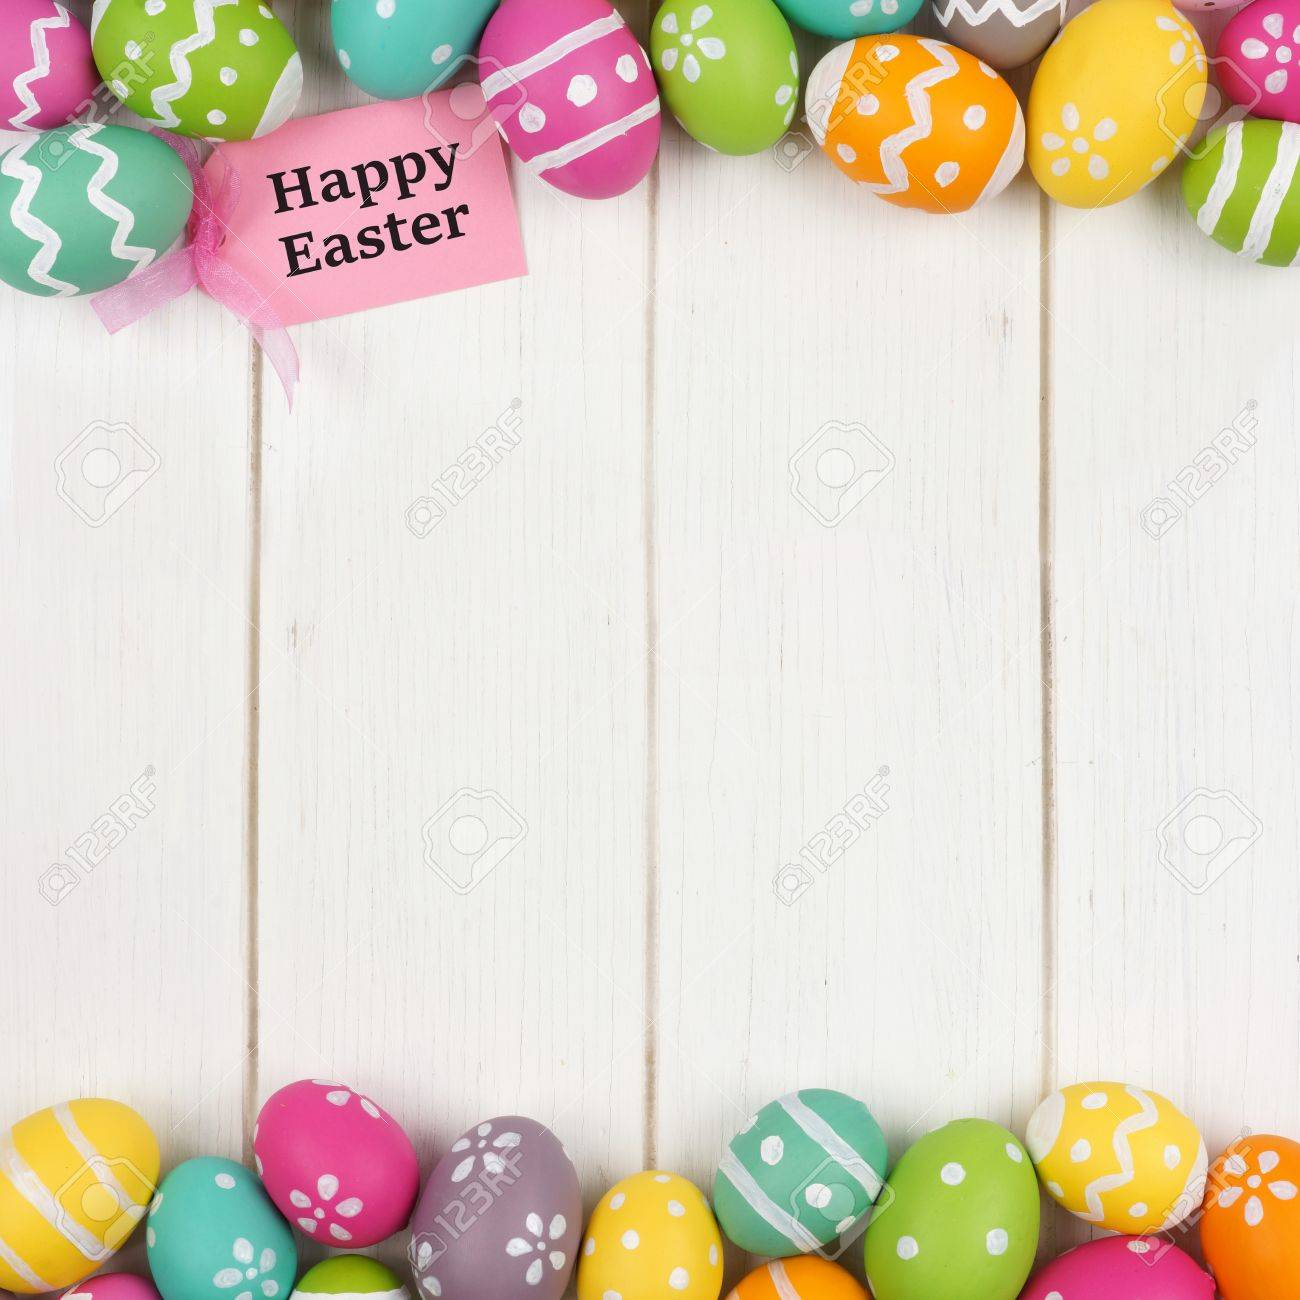 Happy easter gift tag with colorful easter egg double border stock happy easter gift tag with colorful easter egg double border against a white wood background stock negle Choice Image